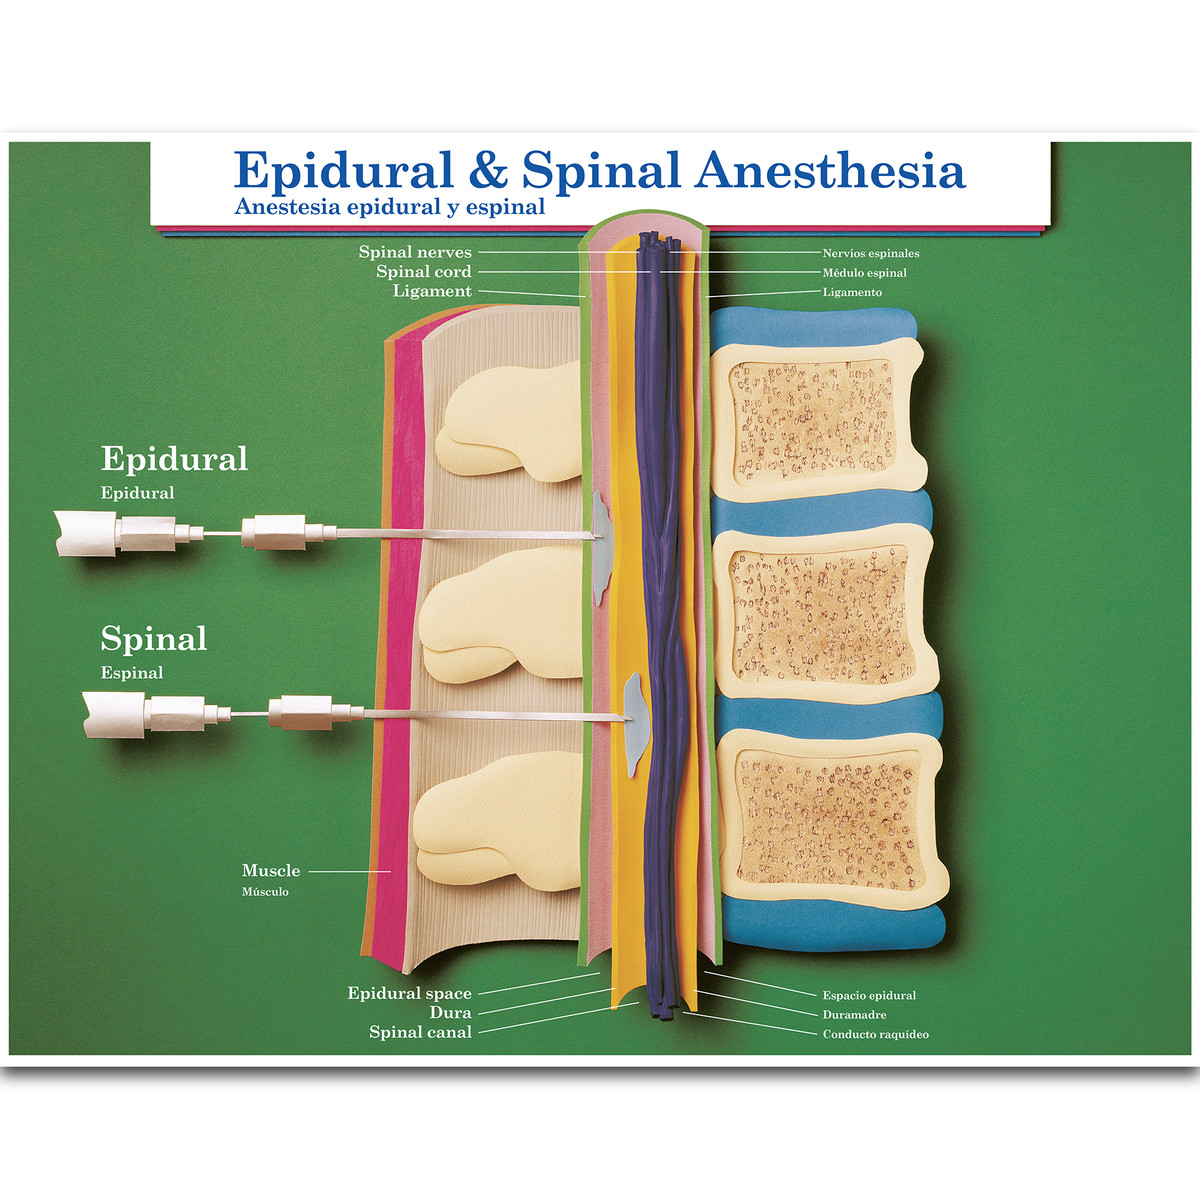 epidural spinal anesthesis Spinal and epidural anesthesia fall into the category of neuraxial anesthesia neuraxial refers to the spinal column and related structures broadly, epidurals and spinals may be categorized as regional anesthetics, as well, since they do numb a region of the body by targeting nerves that supply that area.